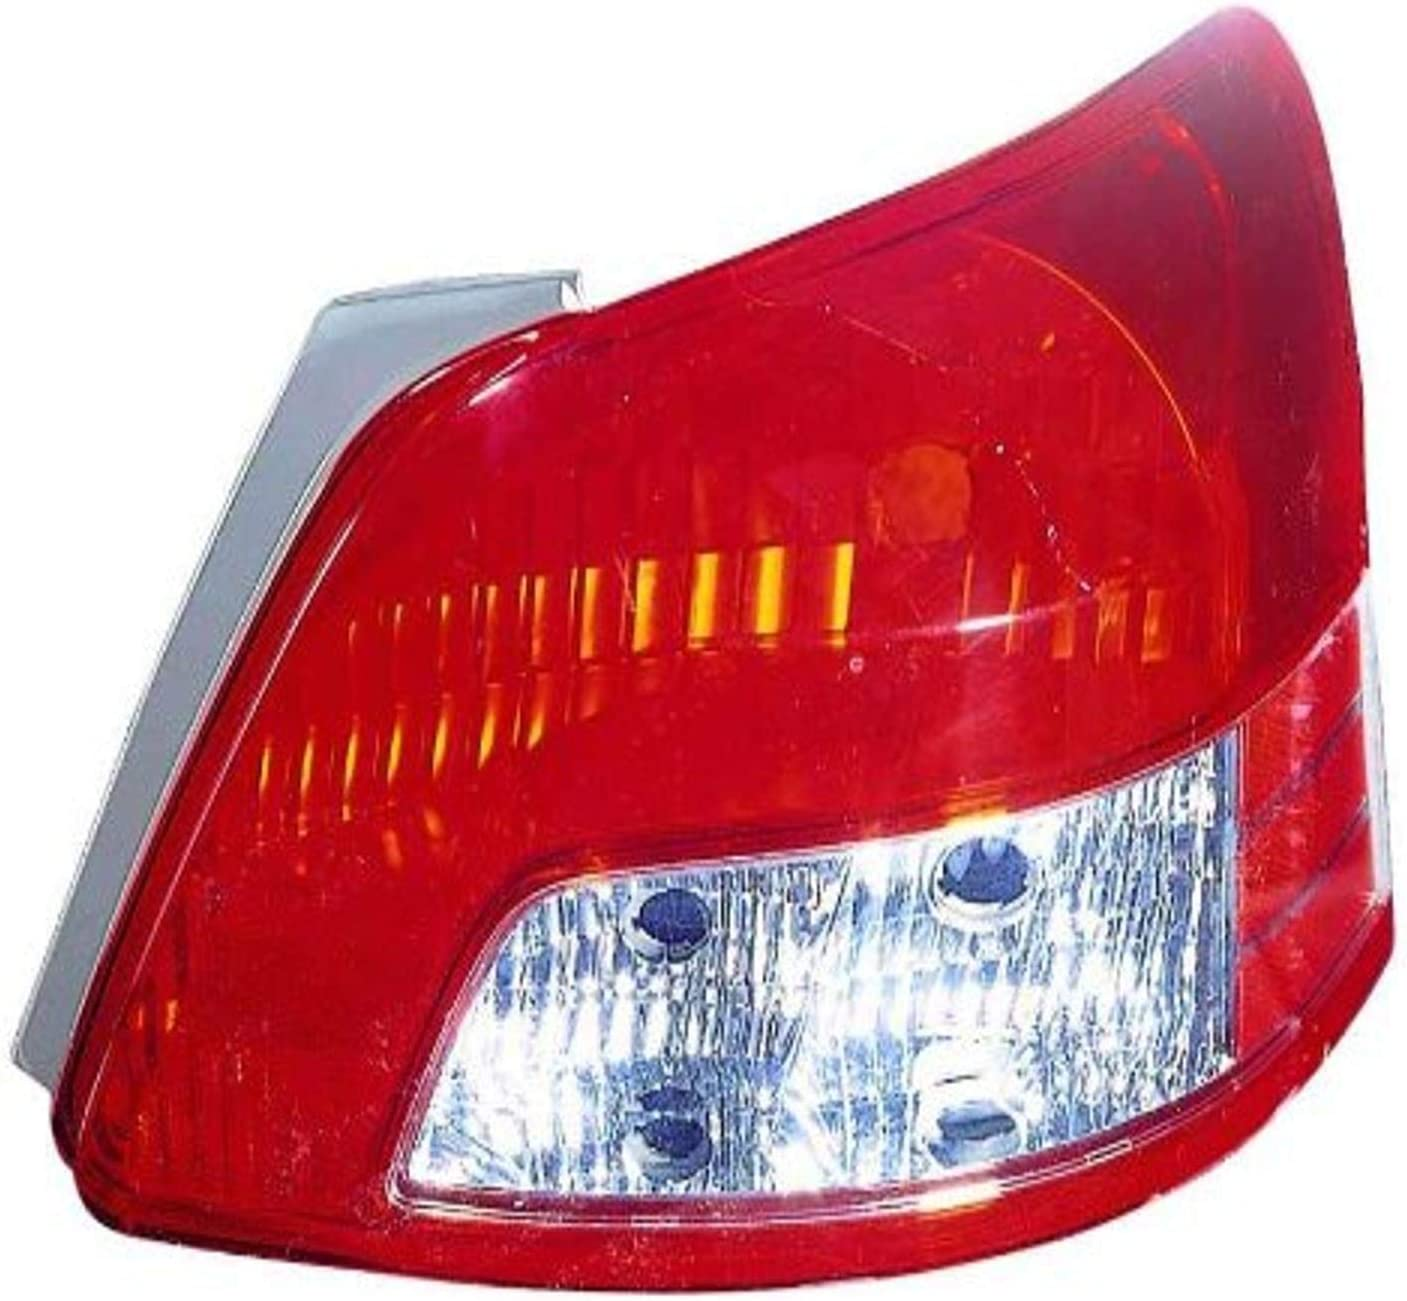 DEPO 312-1980L-USN Replacement Driver Side Ranking integrated 1st place Tail NEW before selling Light Housing T